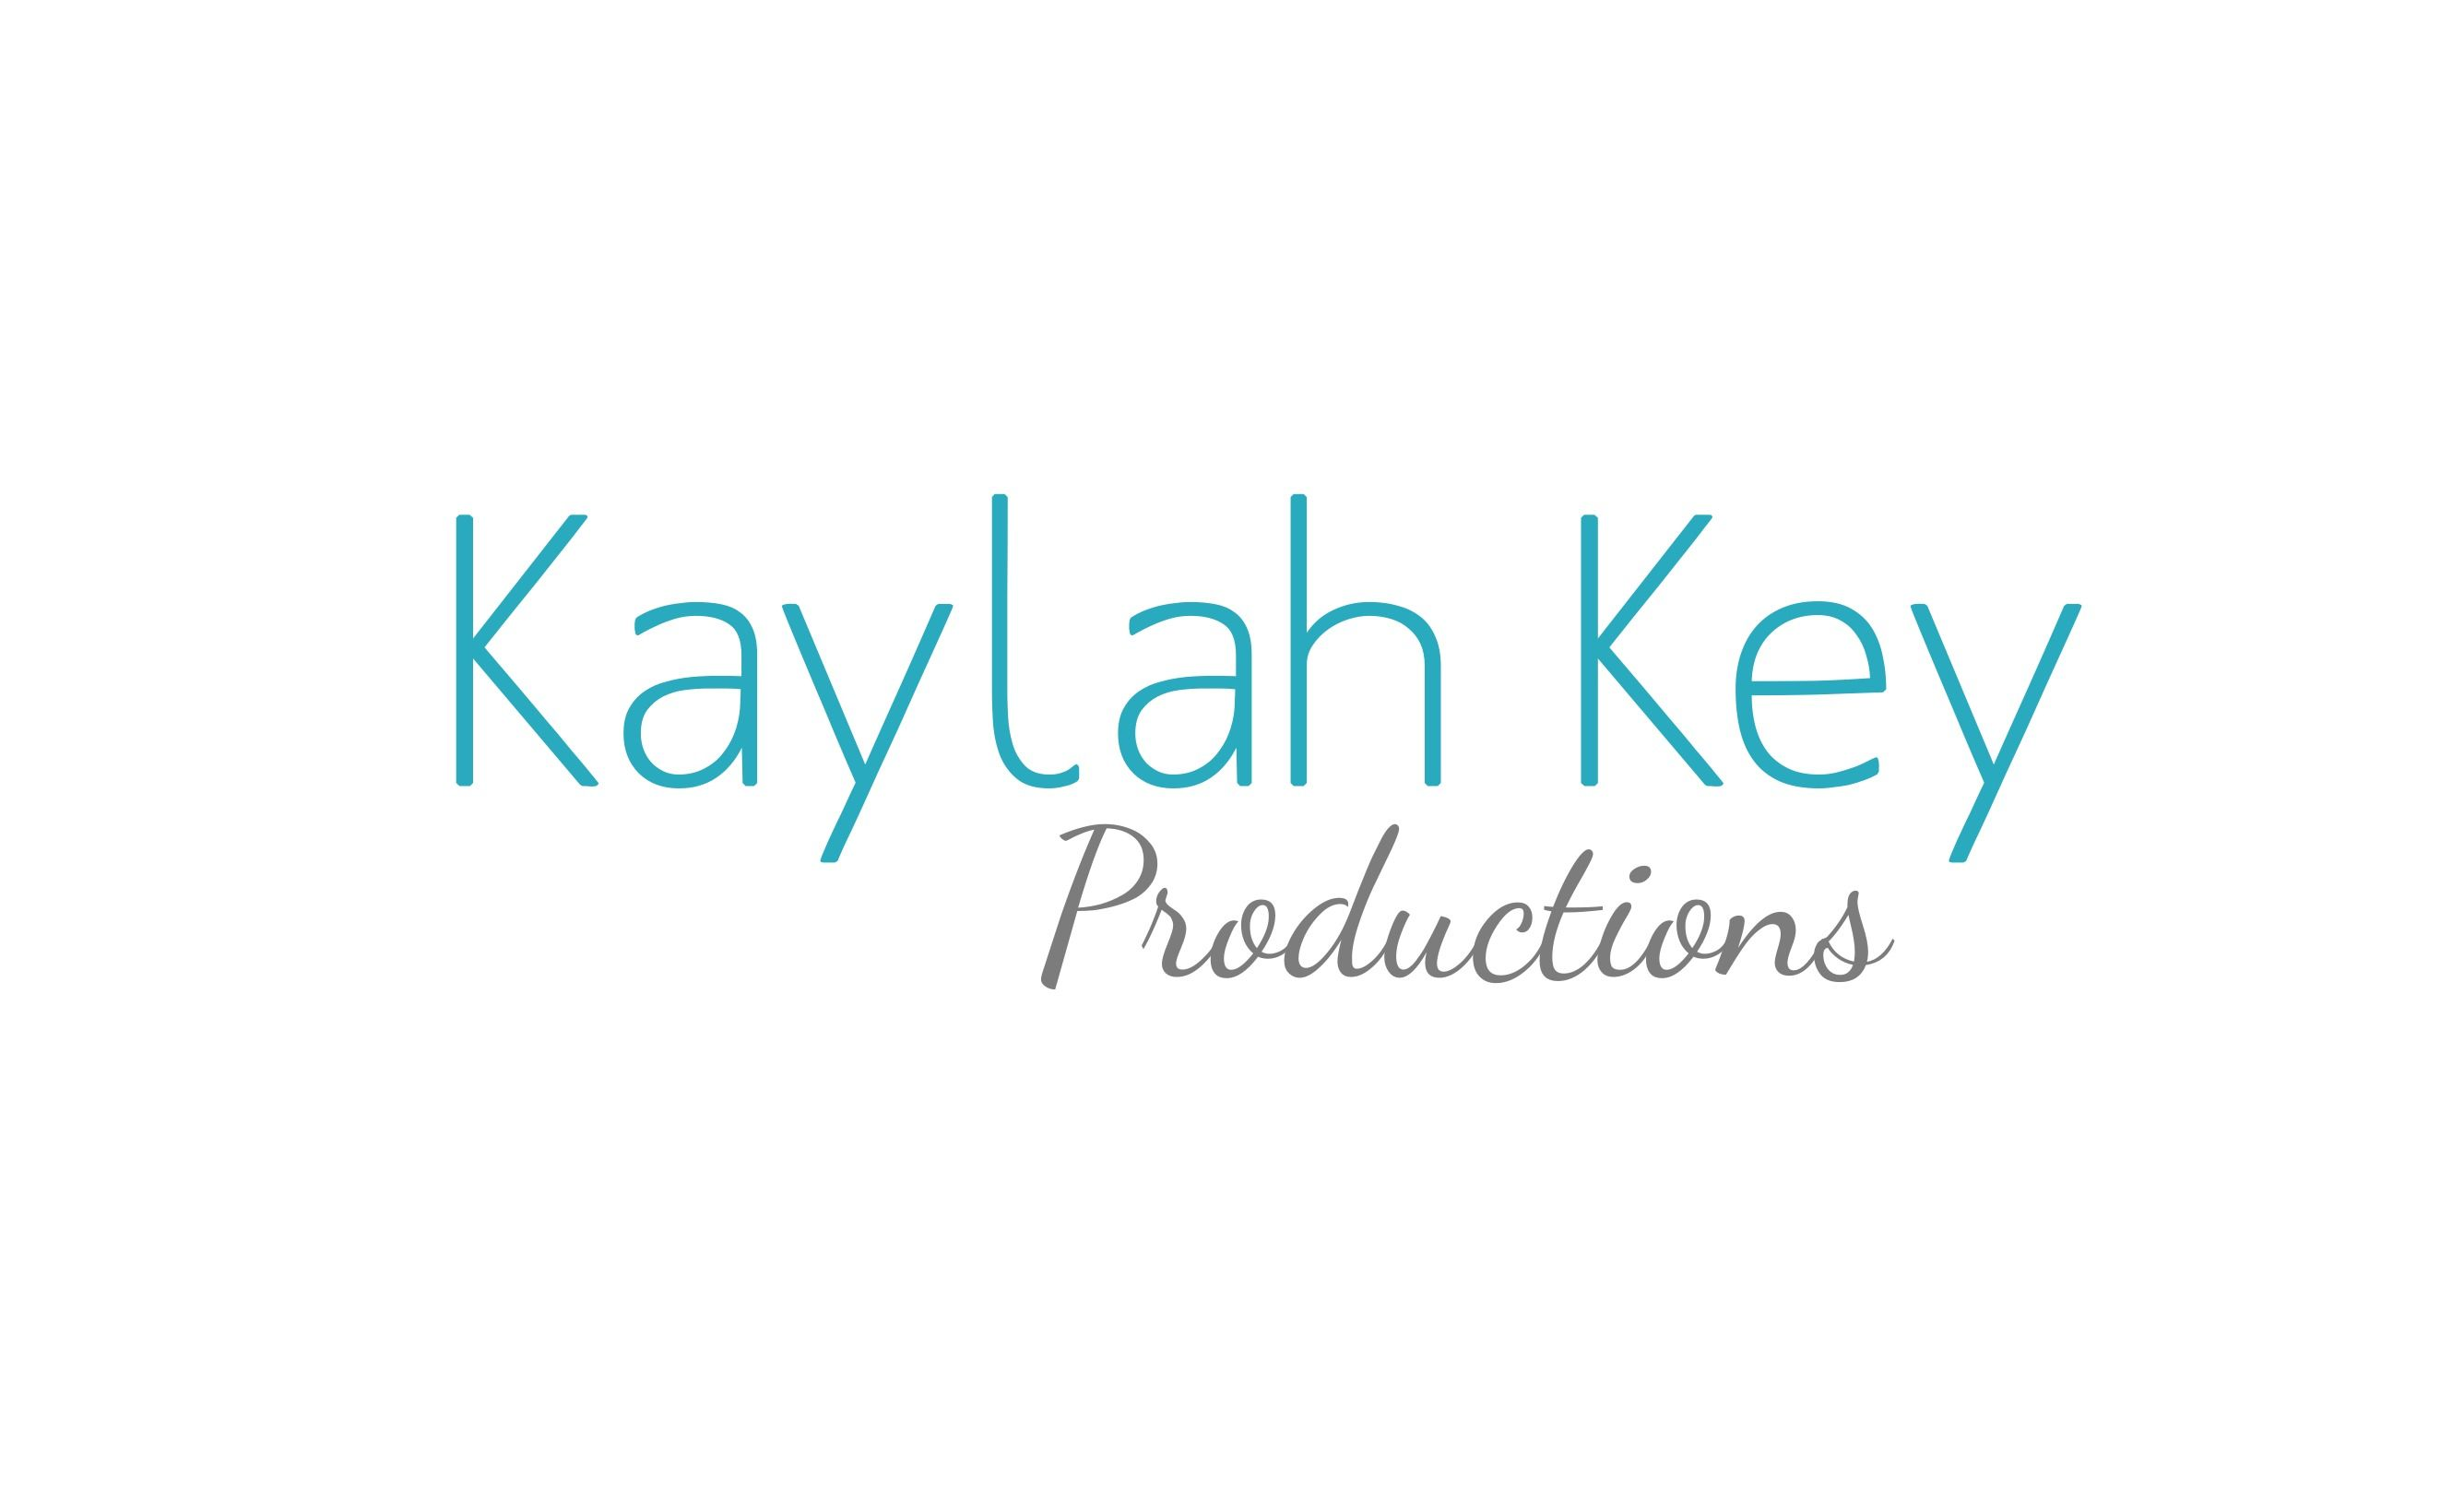 Kaylah Key Productions